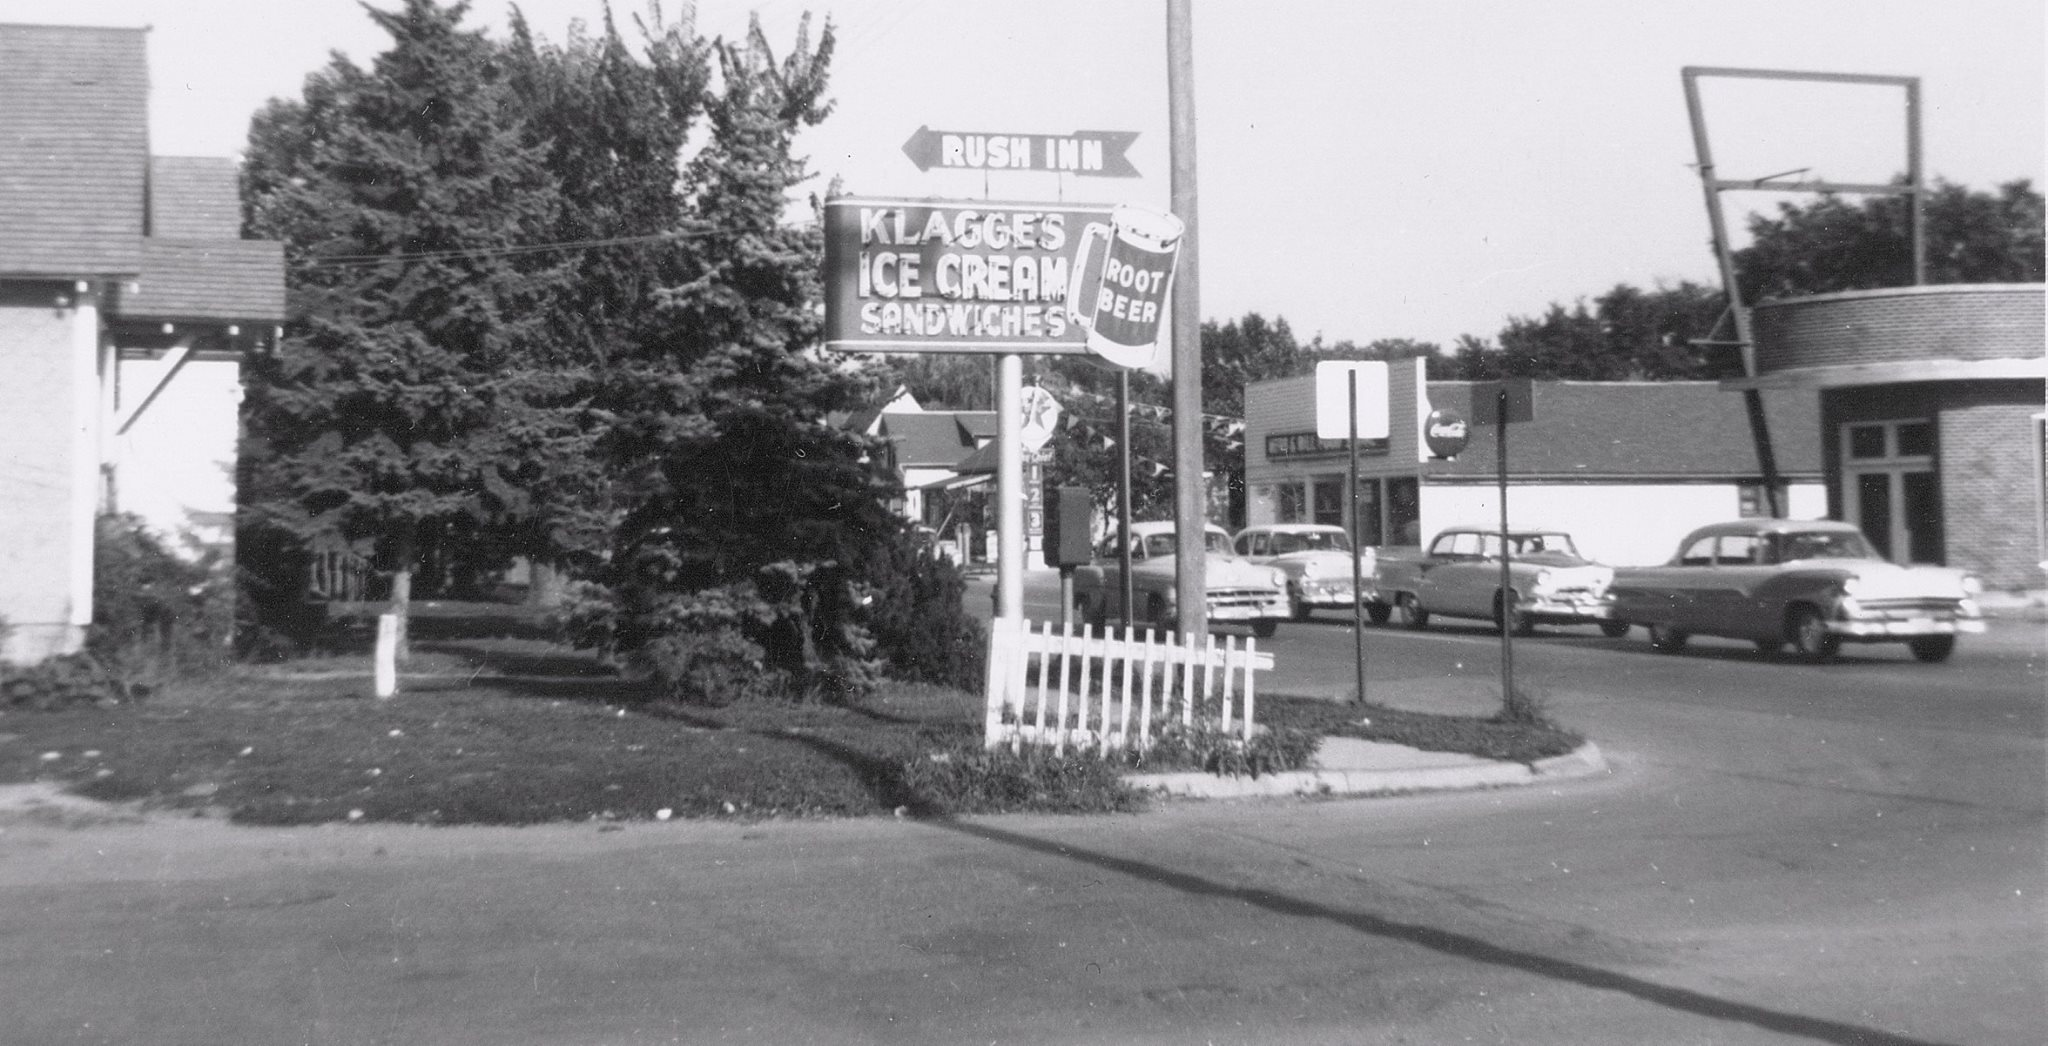 Oakland Ave. and 12th St. NW, where the Muffler Clinic is now located